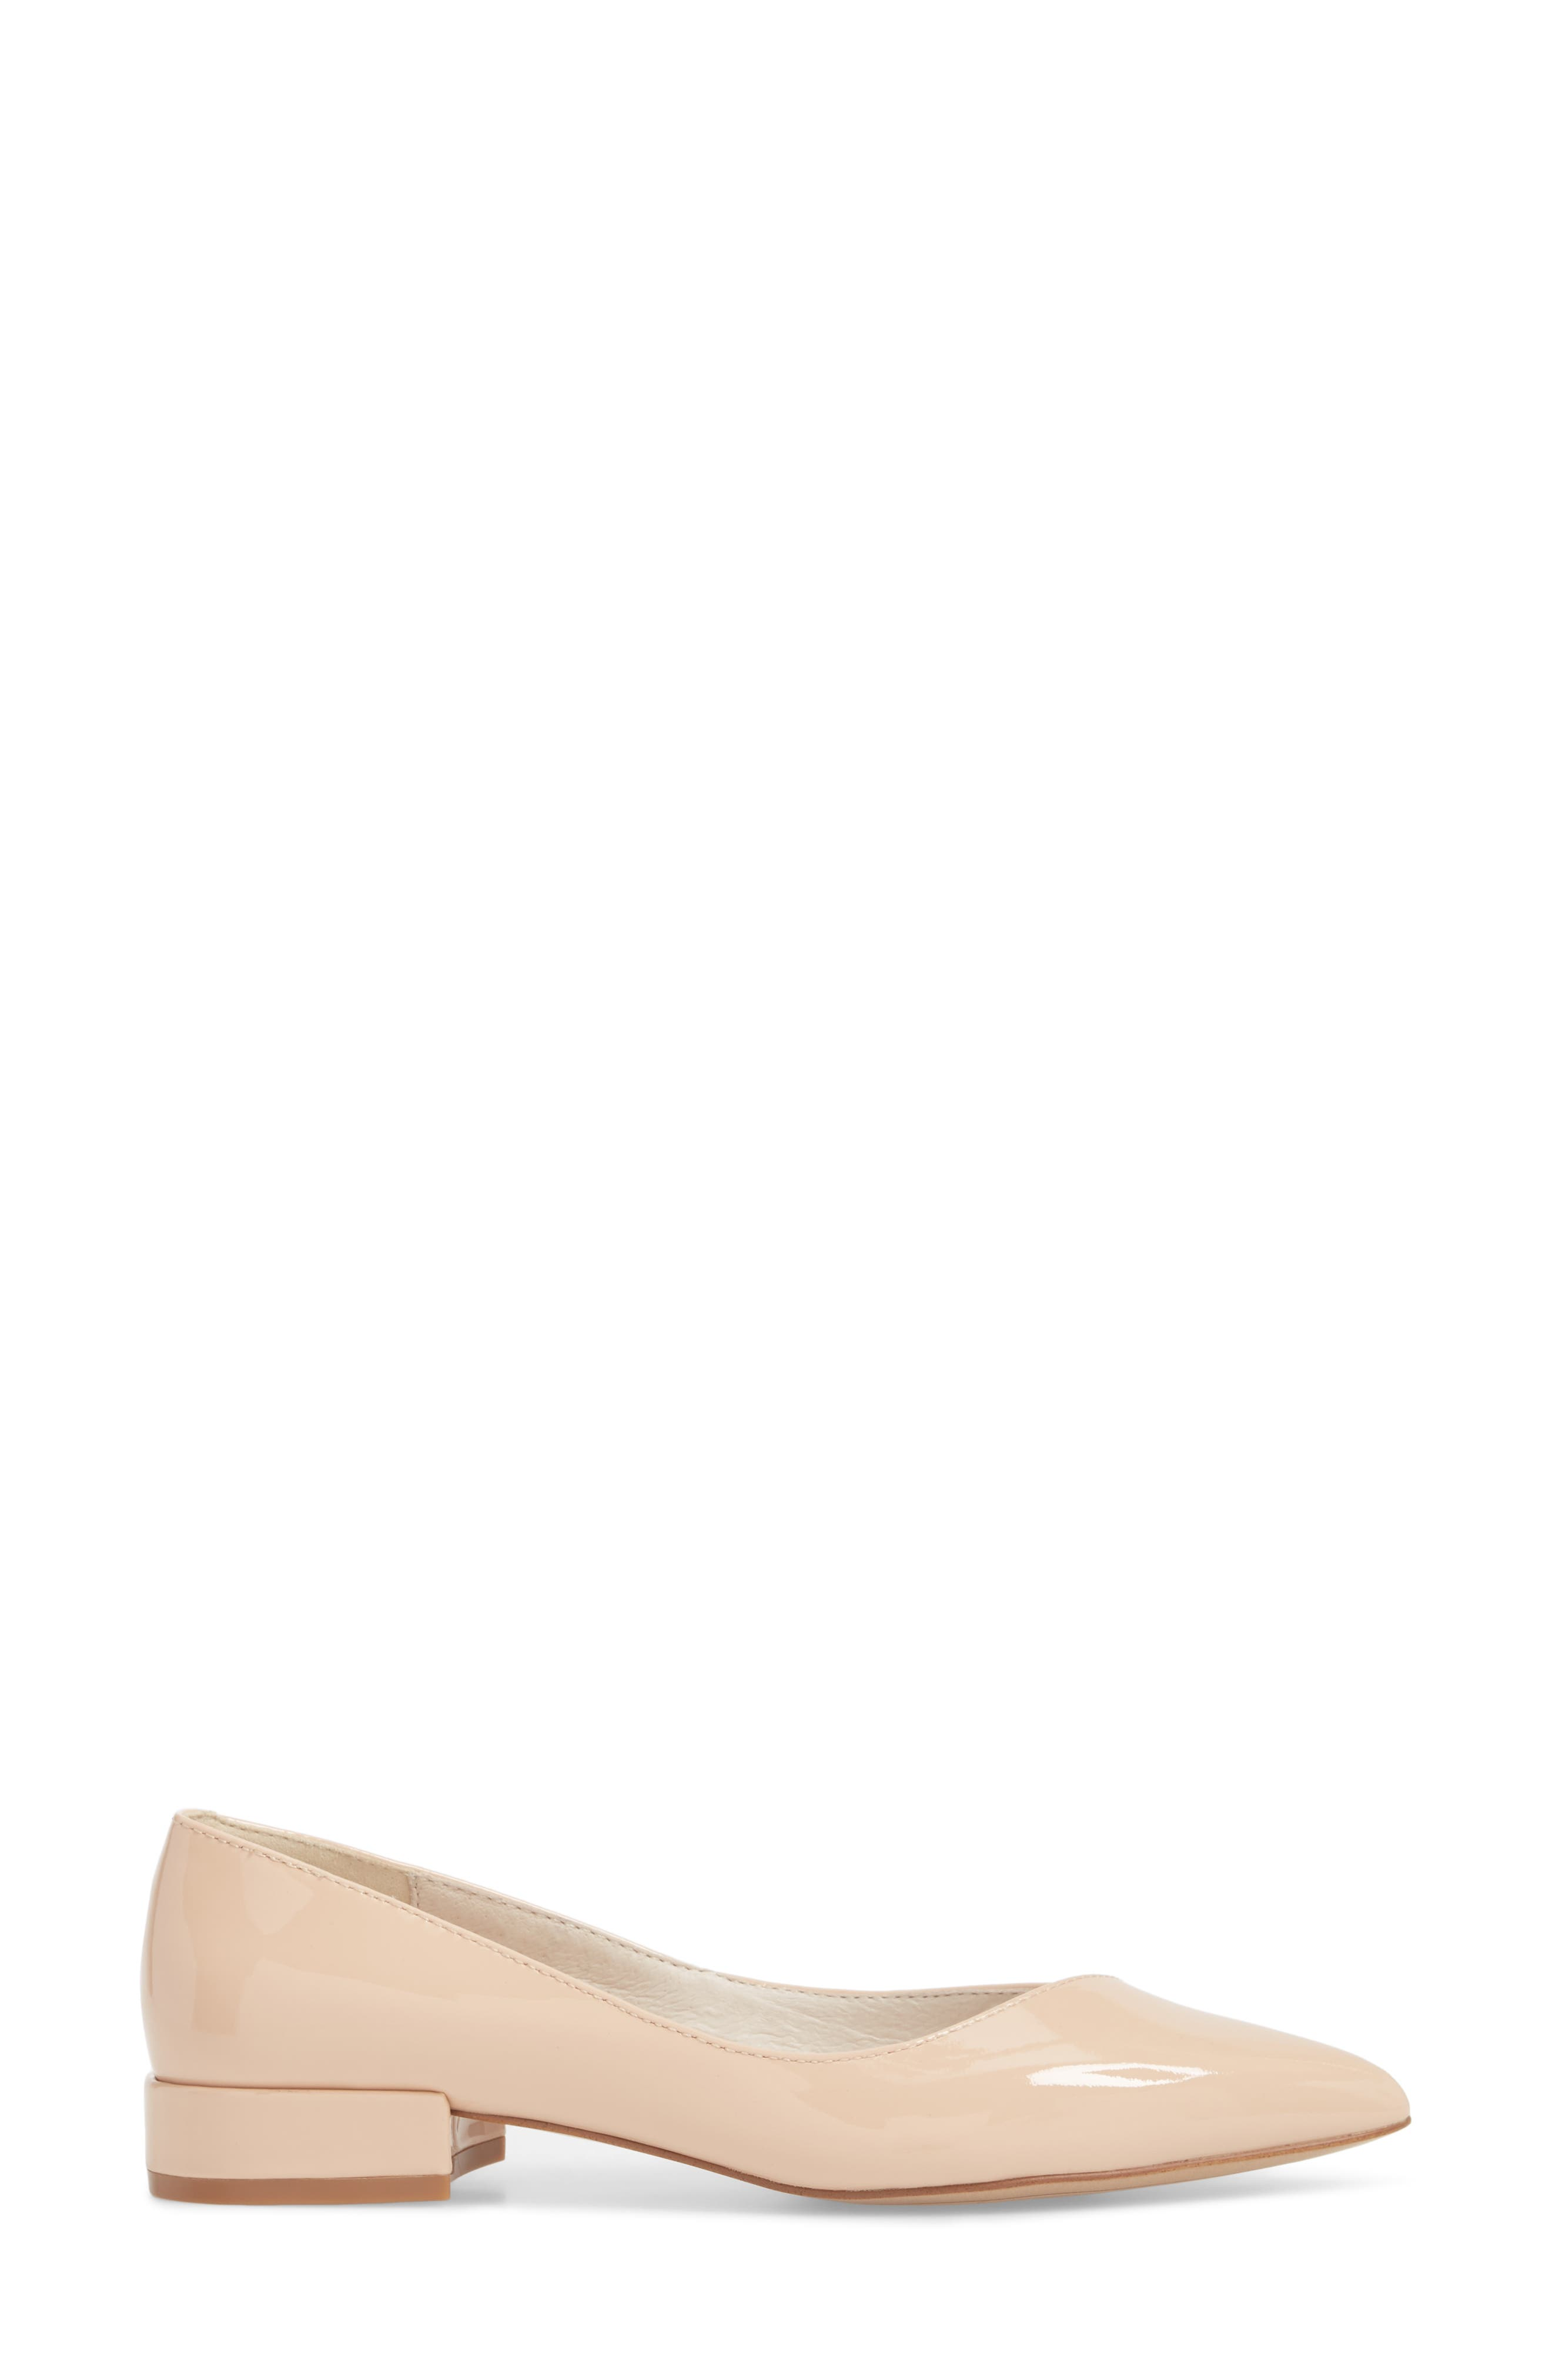 Ames Pointy Toe Flat,                             Alternate thumbnail 3, color,                             294